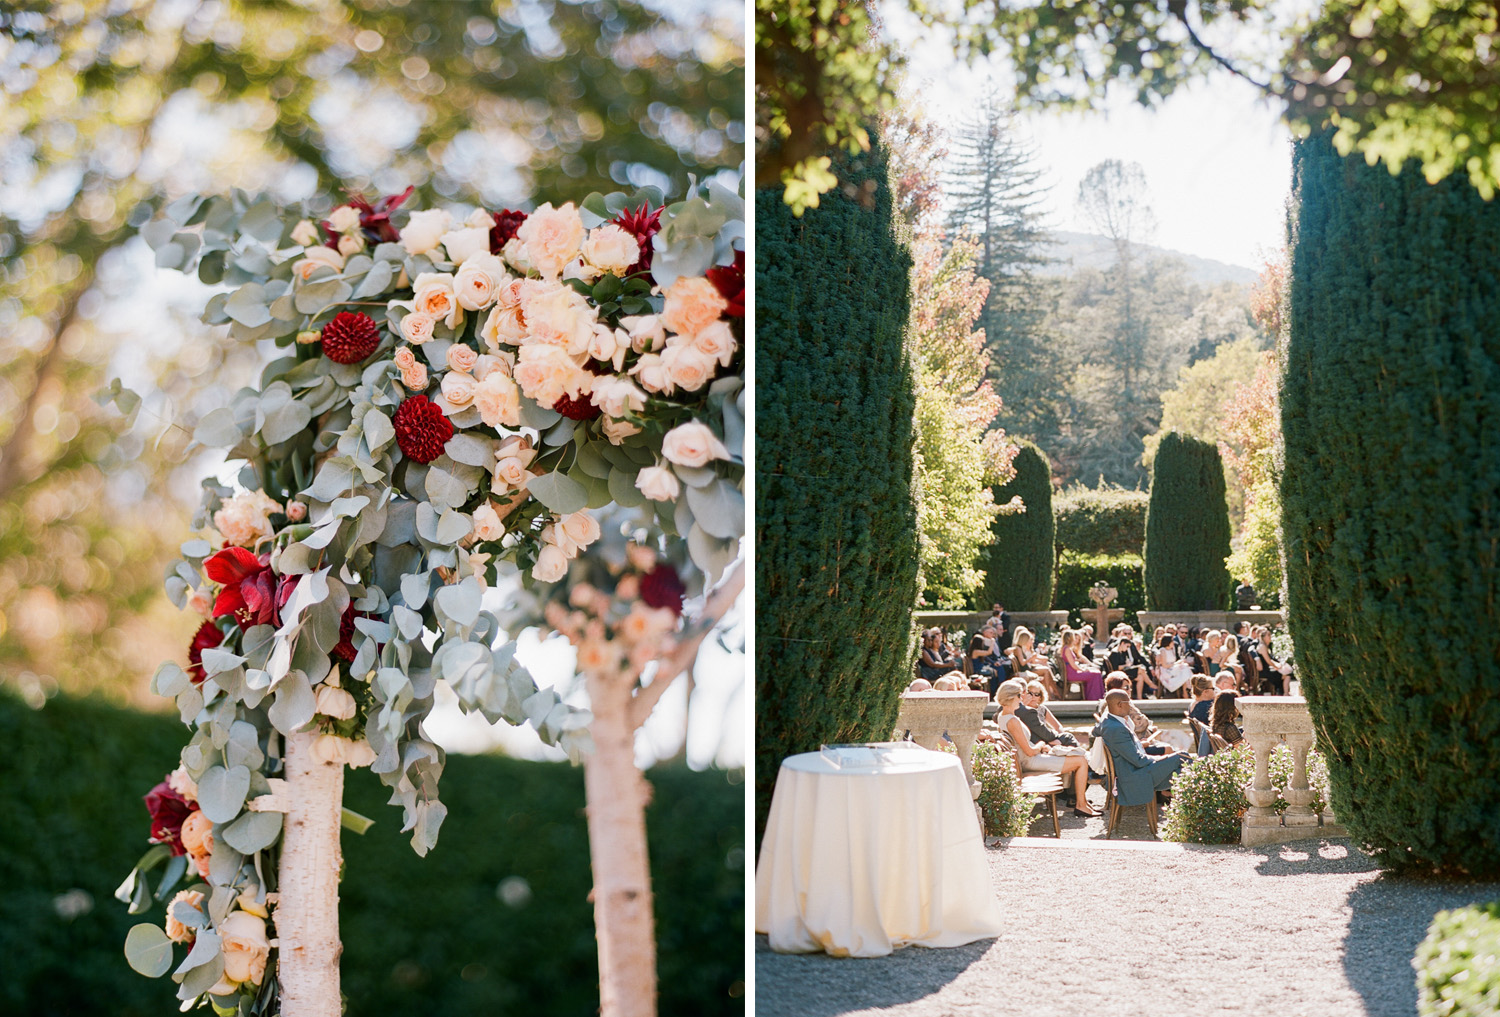 Romantic floral decorate a birch arbor at Beaulieu Gardens in St. Helena wine country; Sylvie Gil Photography